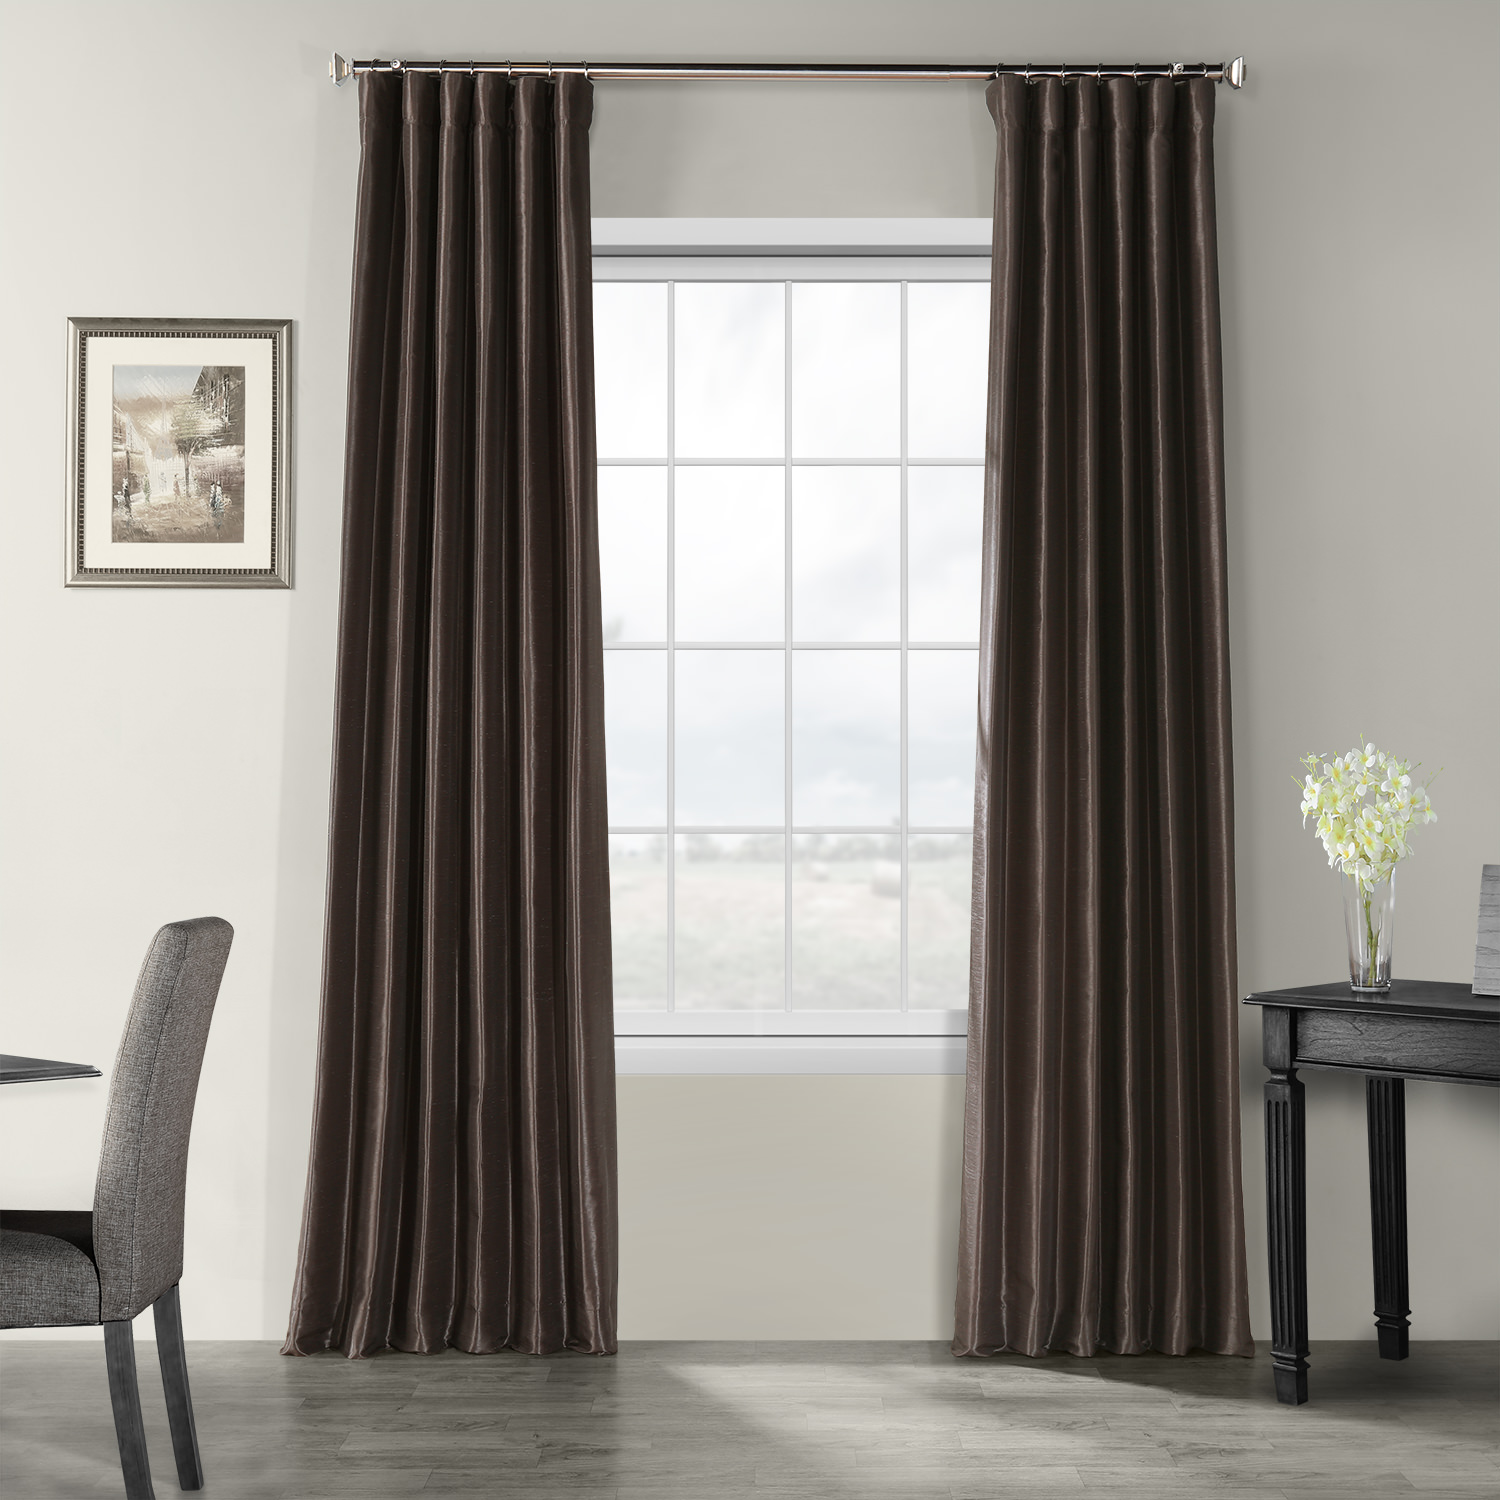 Urban Grey Vintage Textured Faux Dupioni Silk Curtain